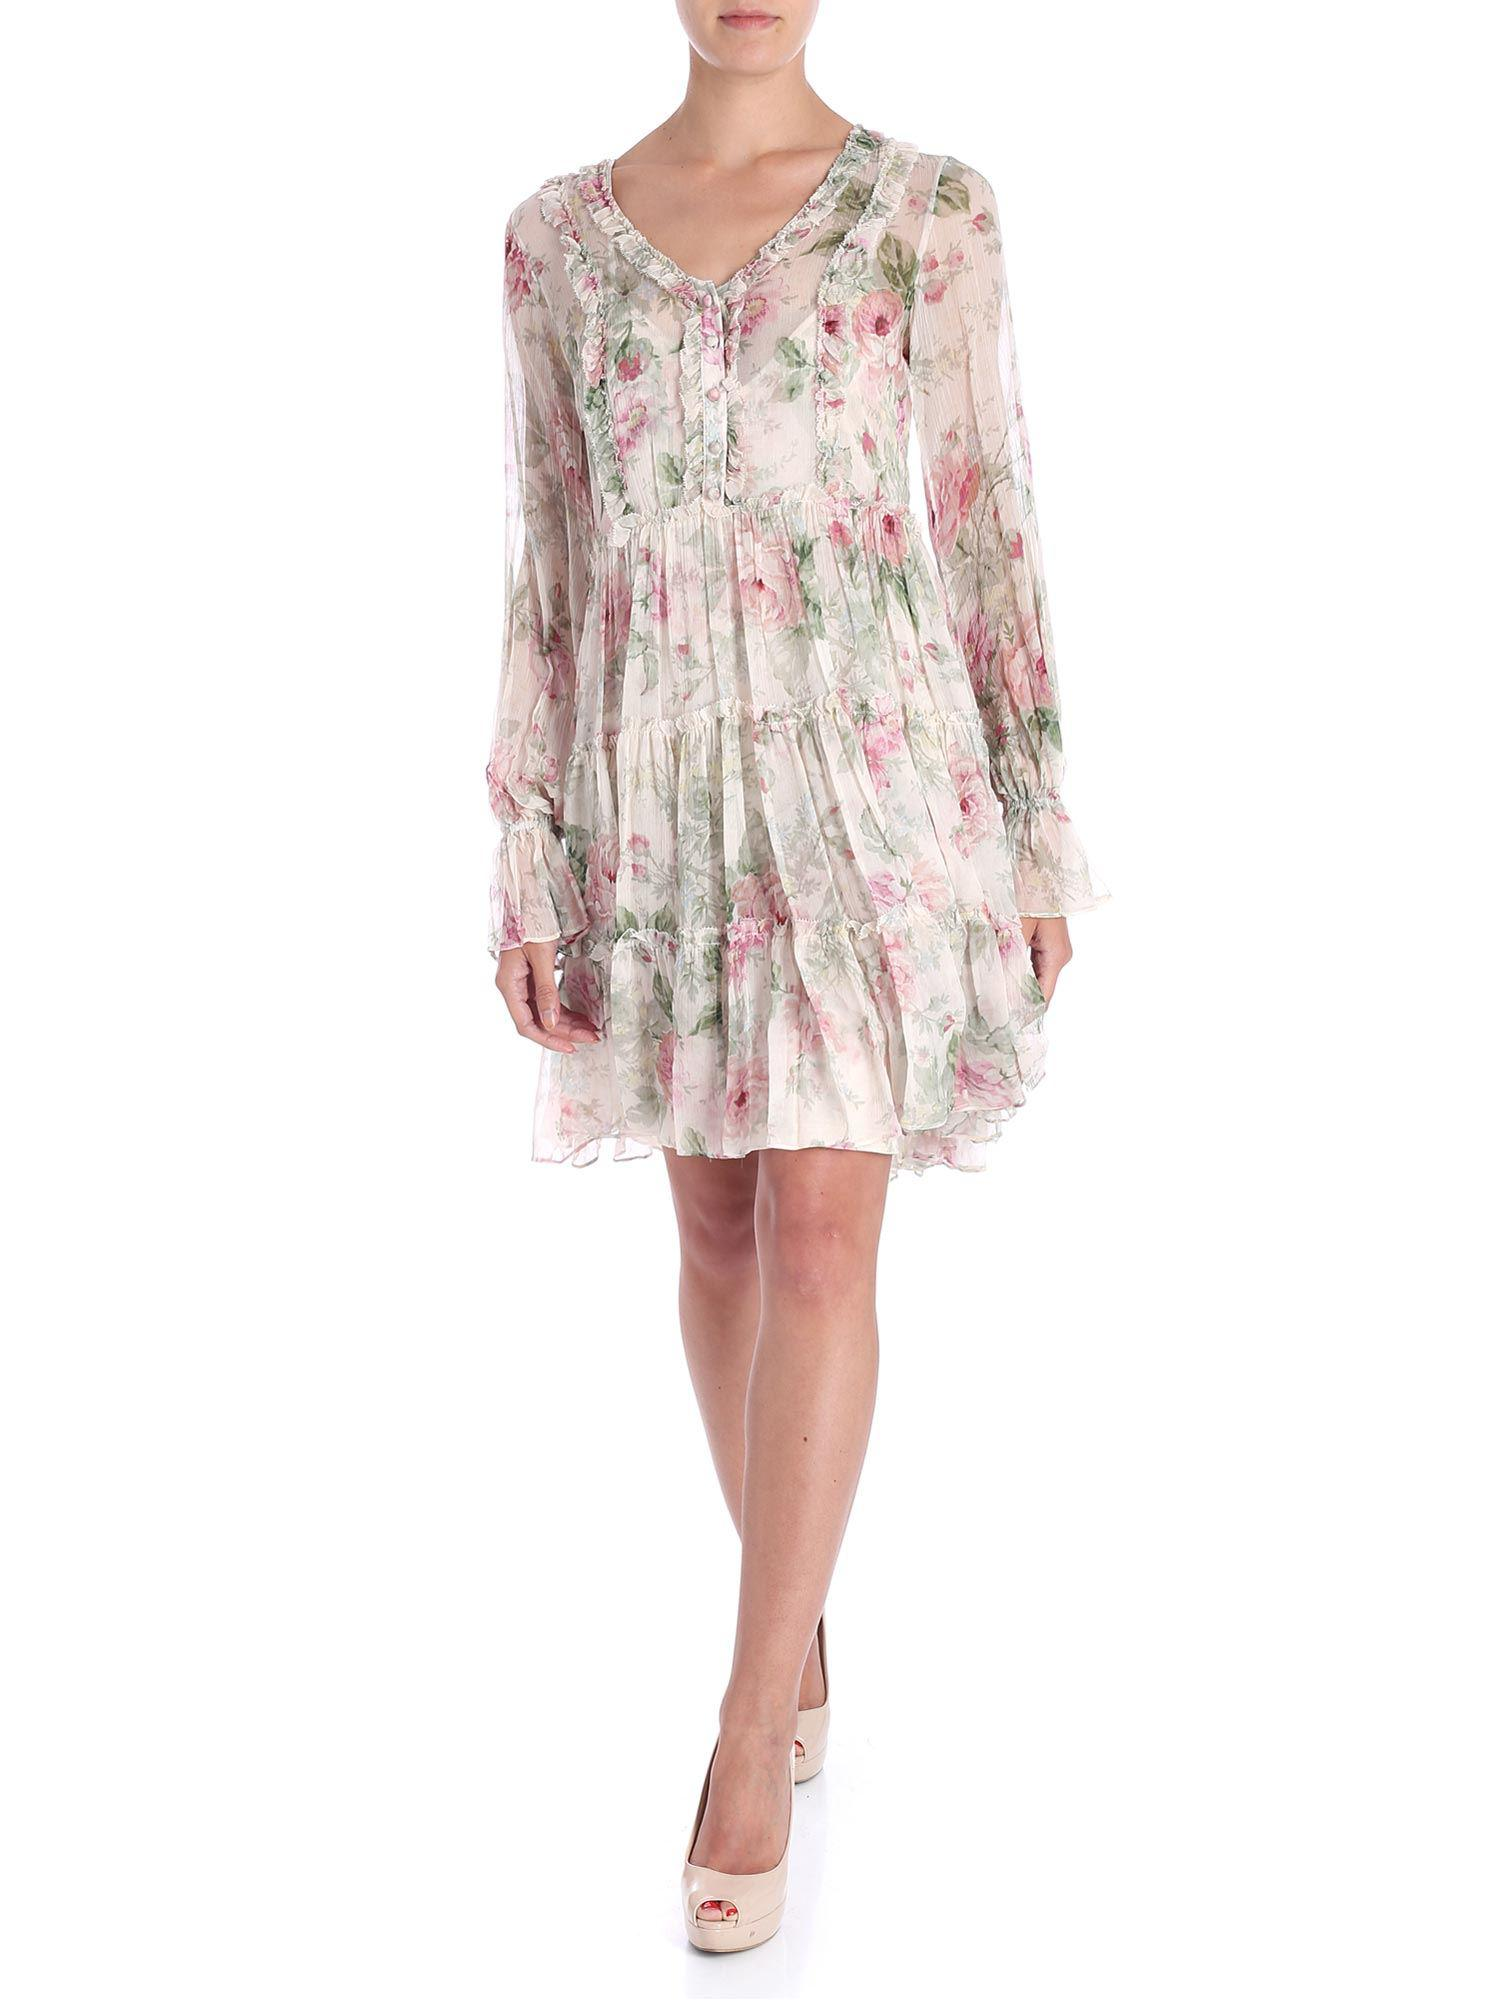 182ad2aadb8b8 Lyst - Polo Ralph Lauren Beige Floral Printed Dress in Natural